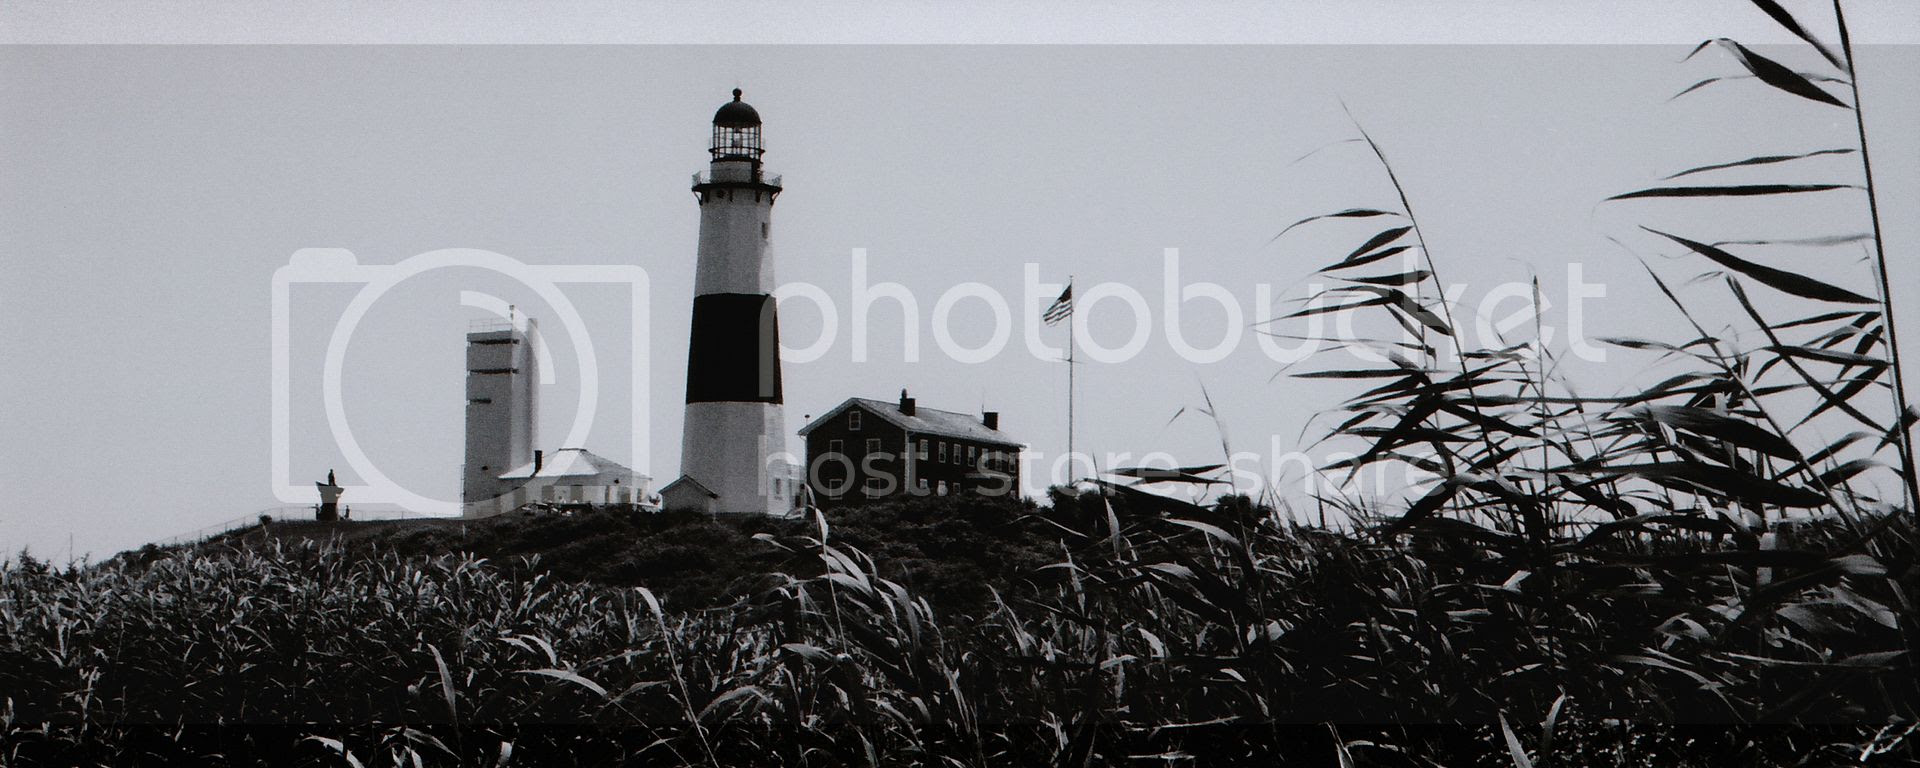 photo lighthouse_zps3ed78a5a.jpg